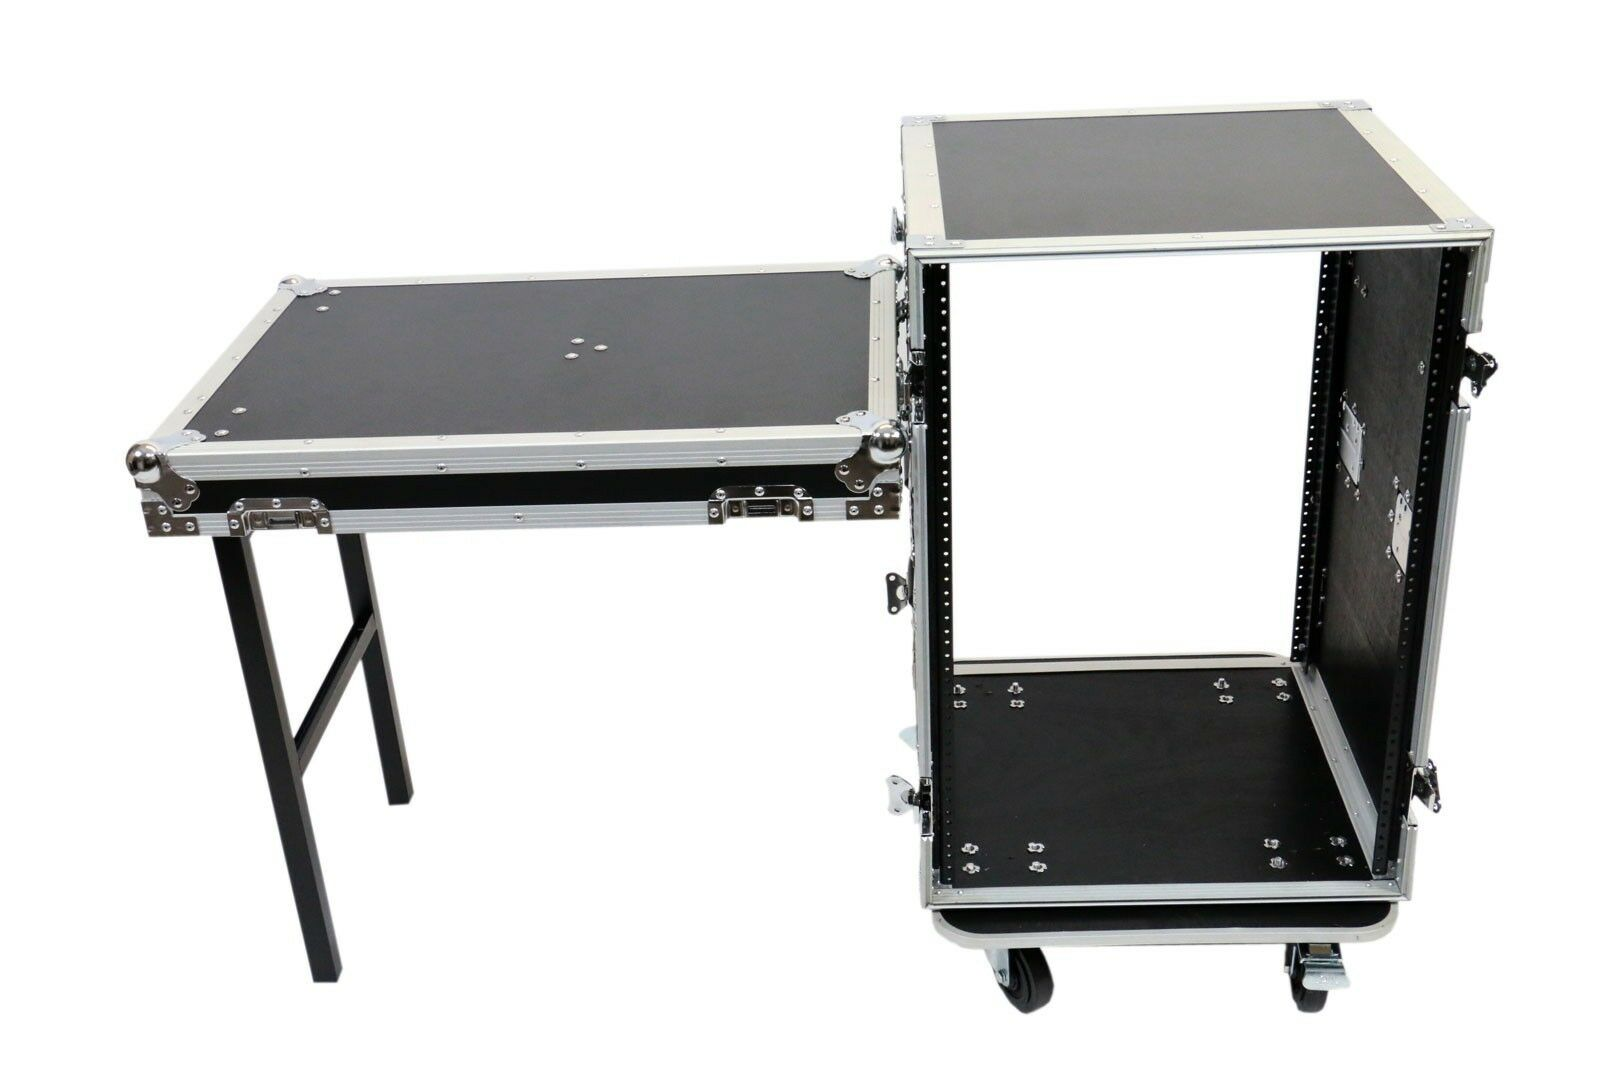 16 Space Amp ATA Rack Road Case w Lid Table by OSP